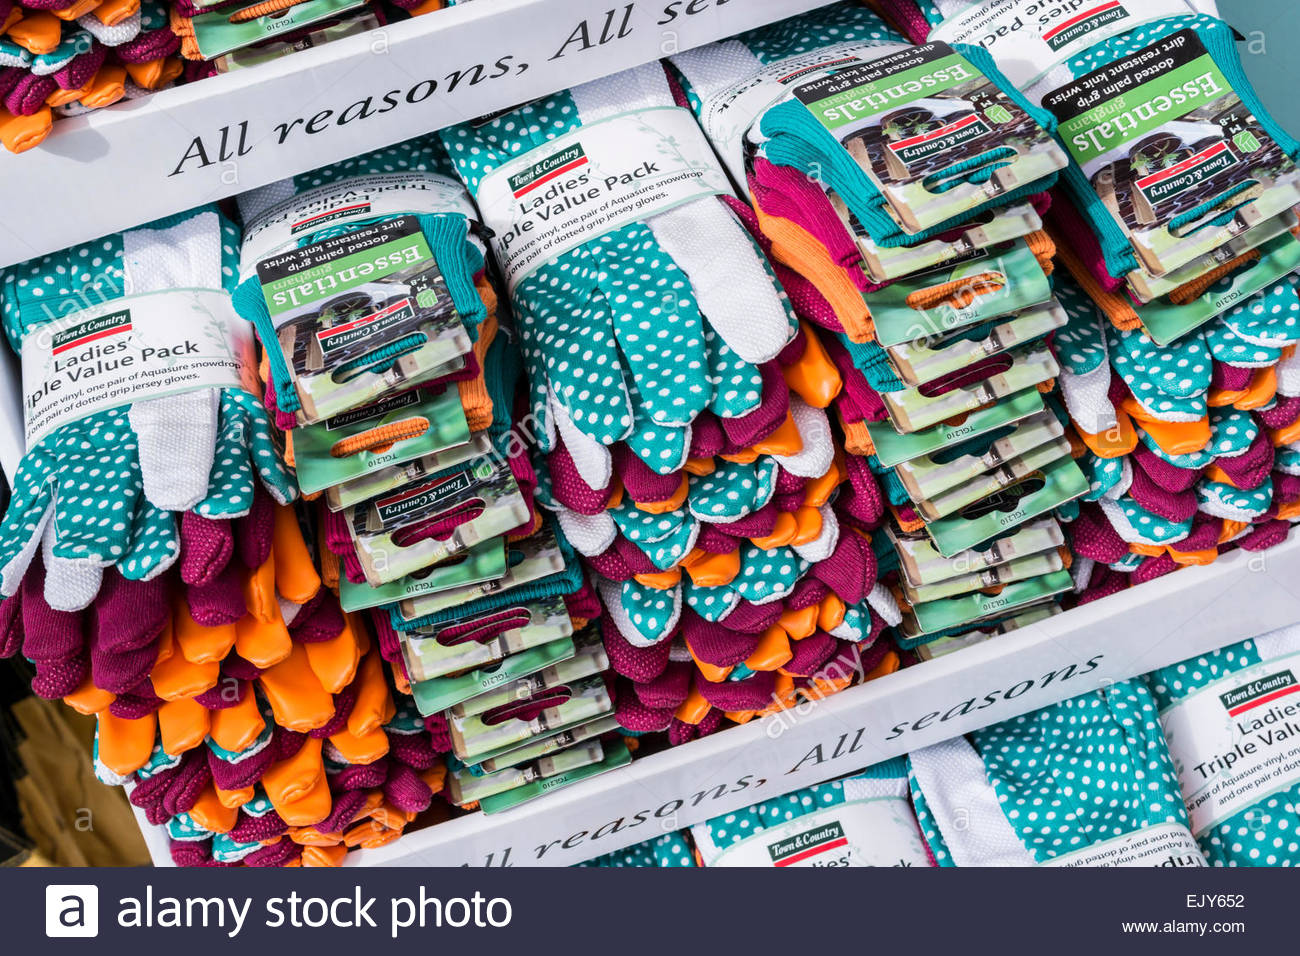 Display of gardening gloves on sale at a garden centre - Stock Image